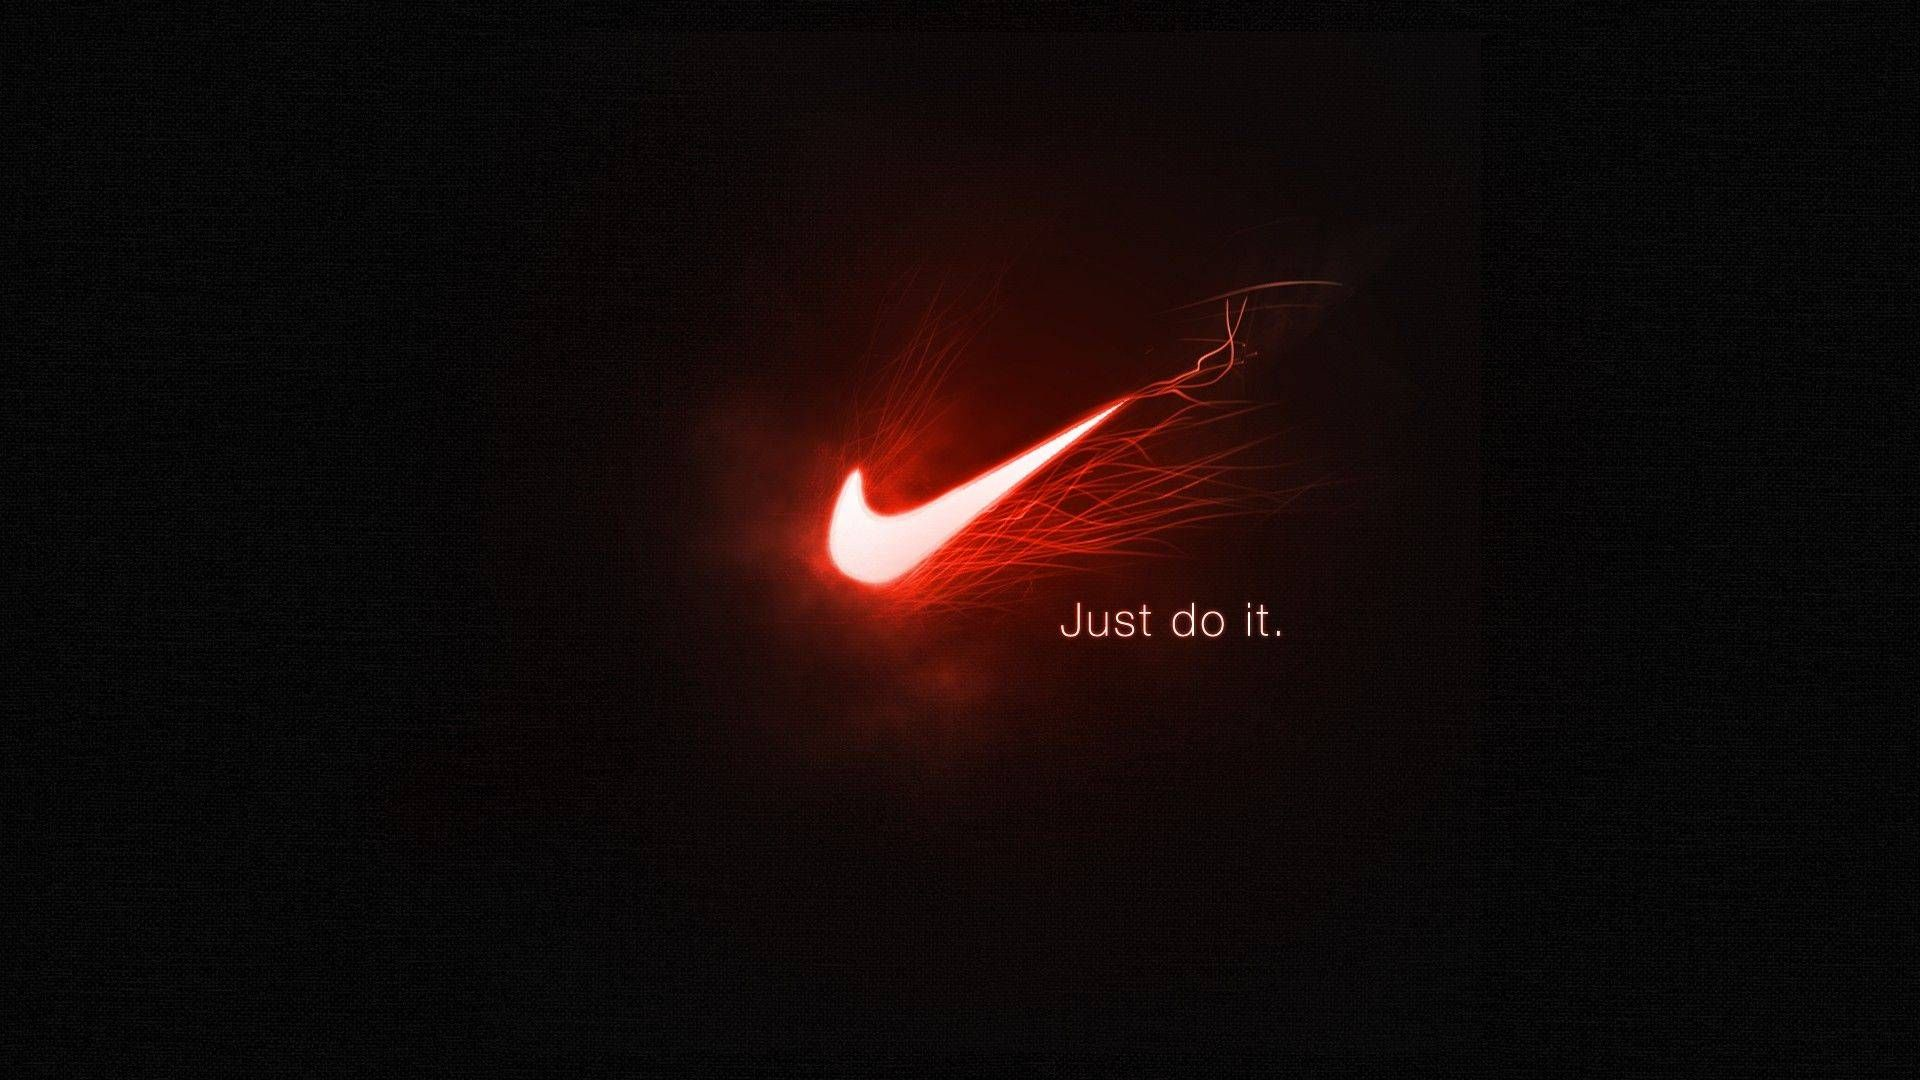 Nike D Wallpapers